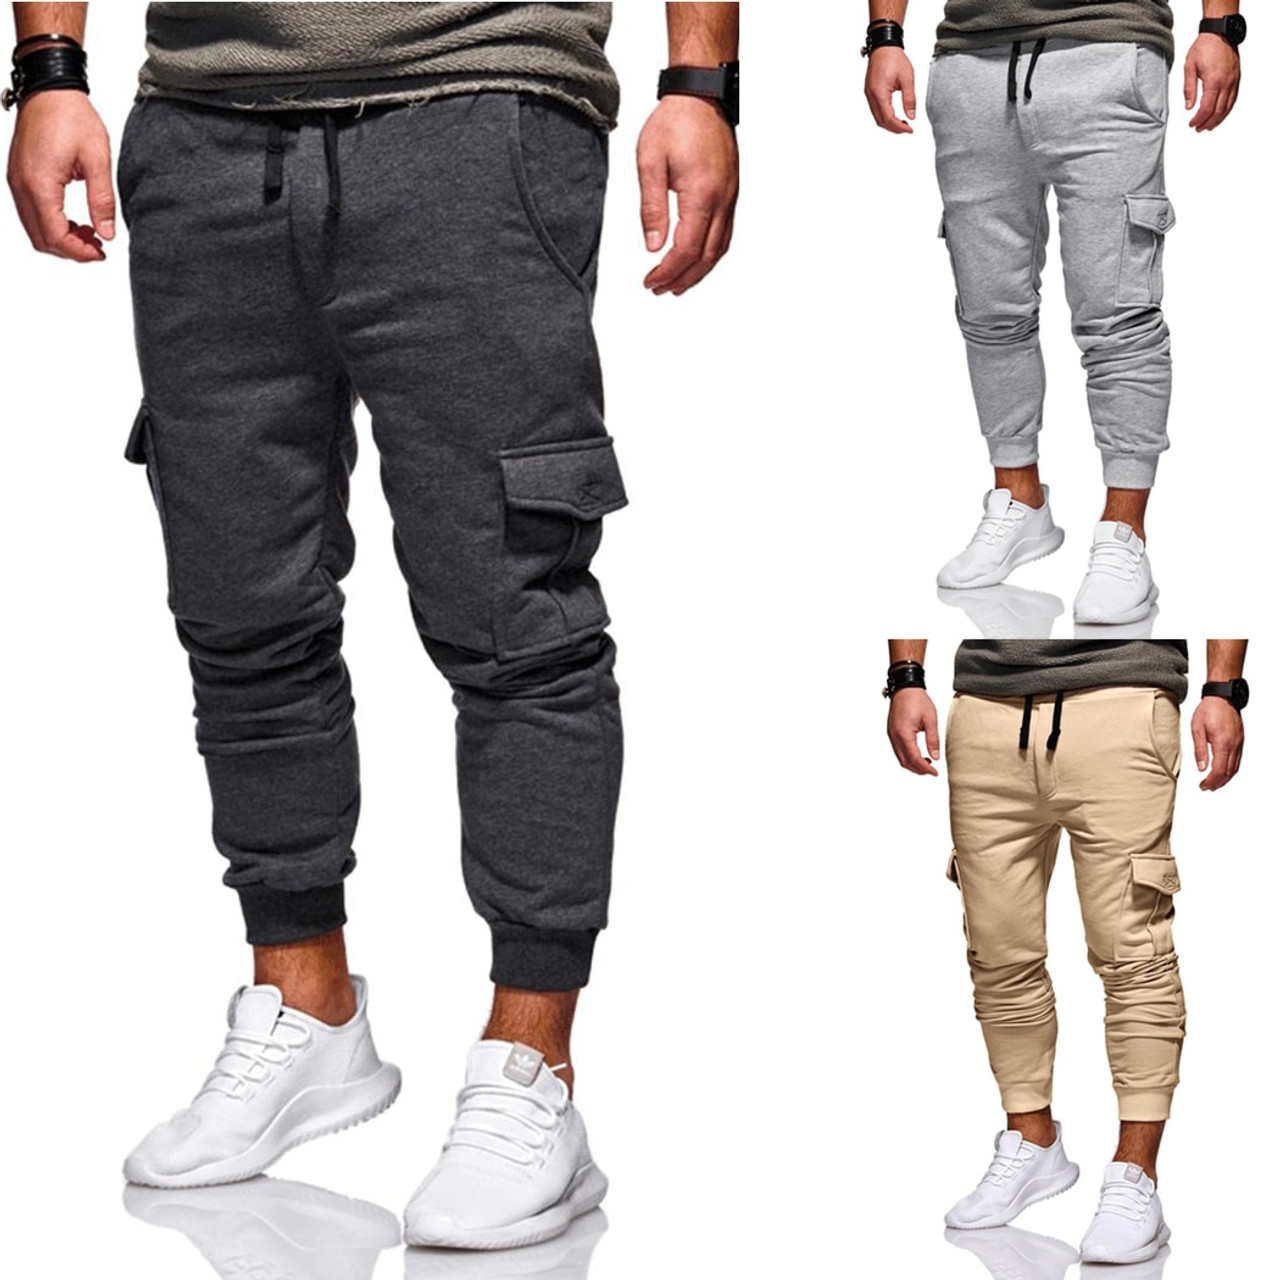 8c0fa97a03c ... New 2019 Men Cargo Pants Fashion Tactical Joggers Fitness Workout  Pockets Sweatpants Plus Size 4XL Casual ...